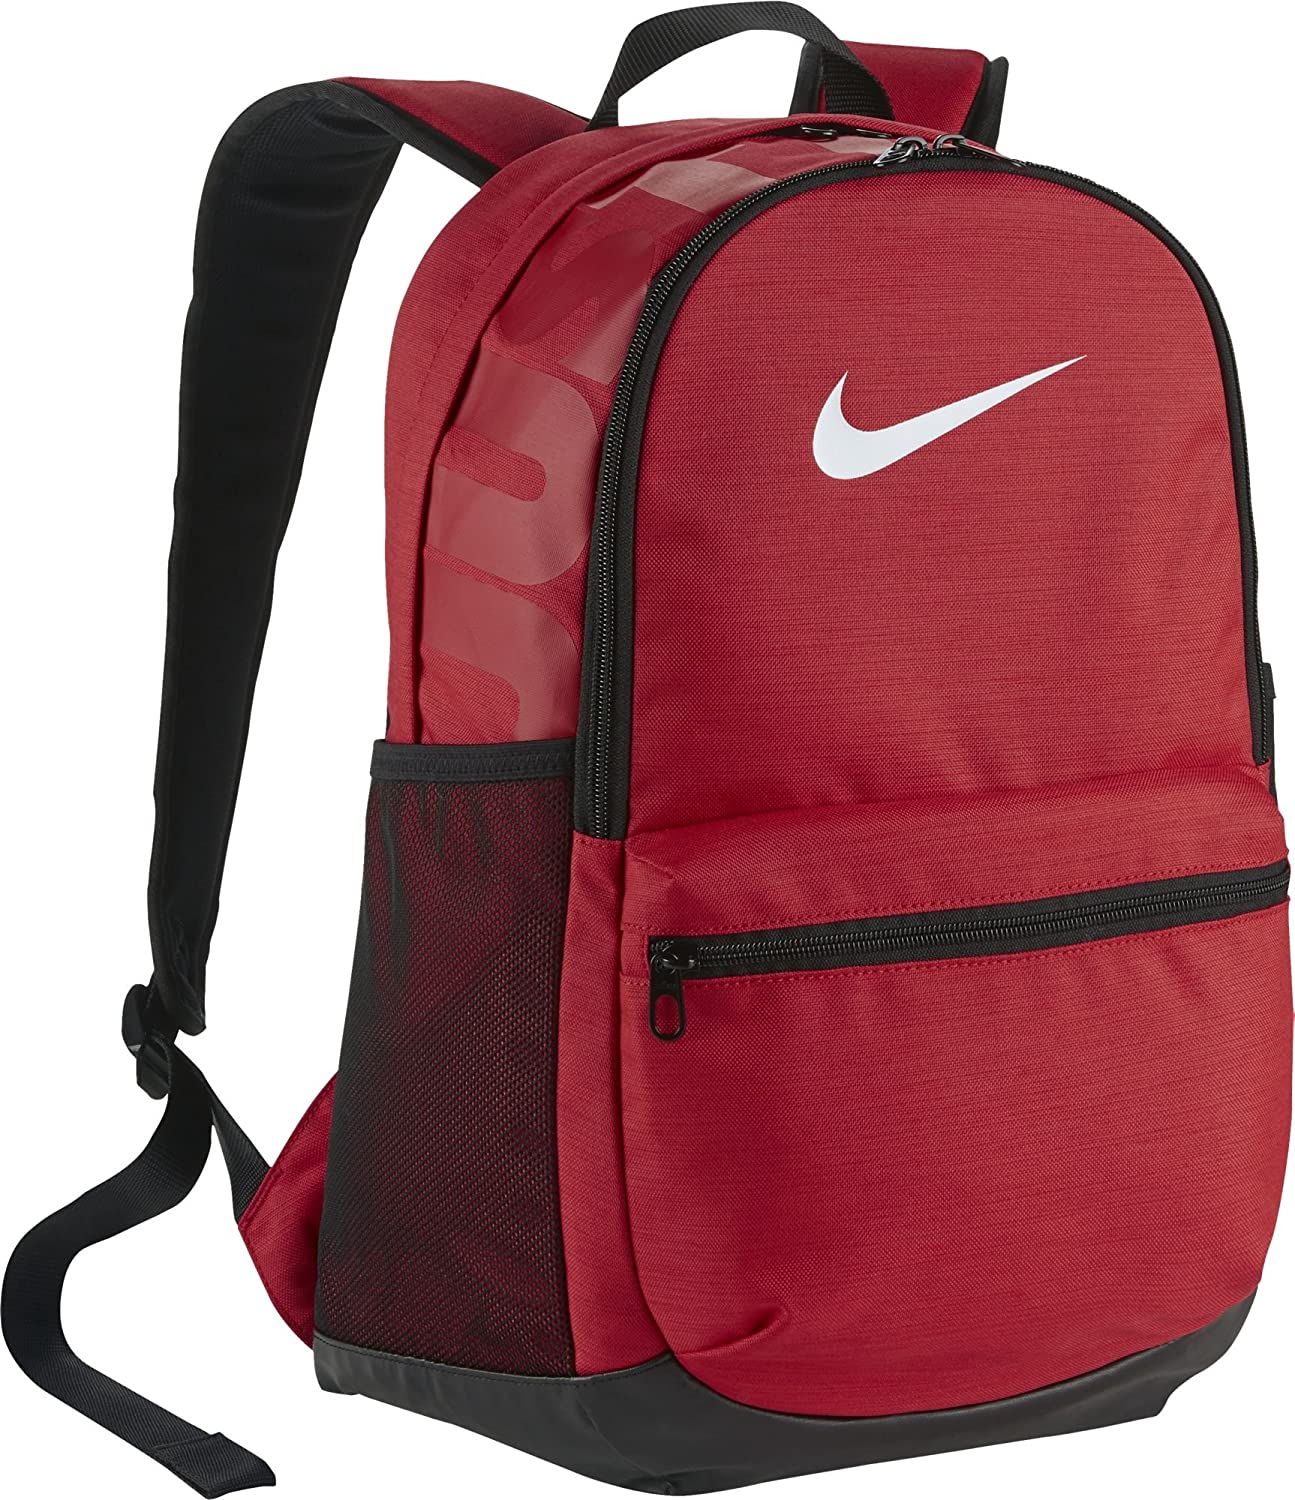 nike backpack Amazon | Wishmindr, Wish List App